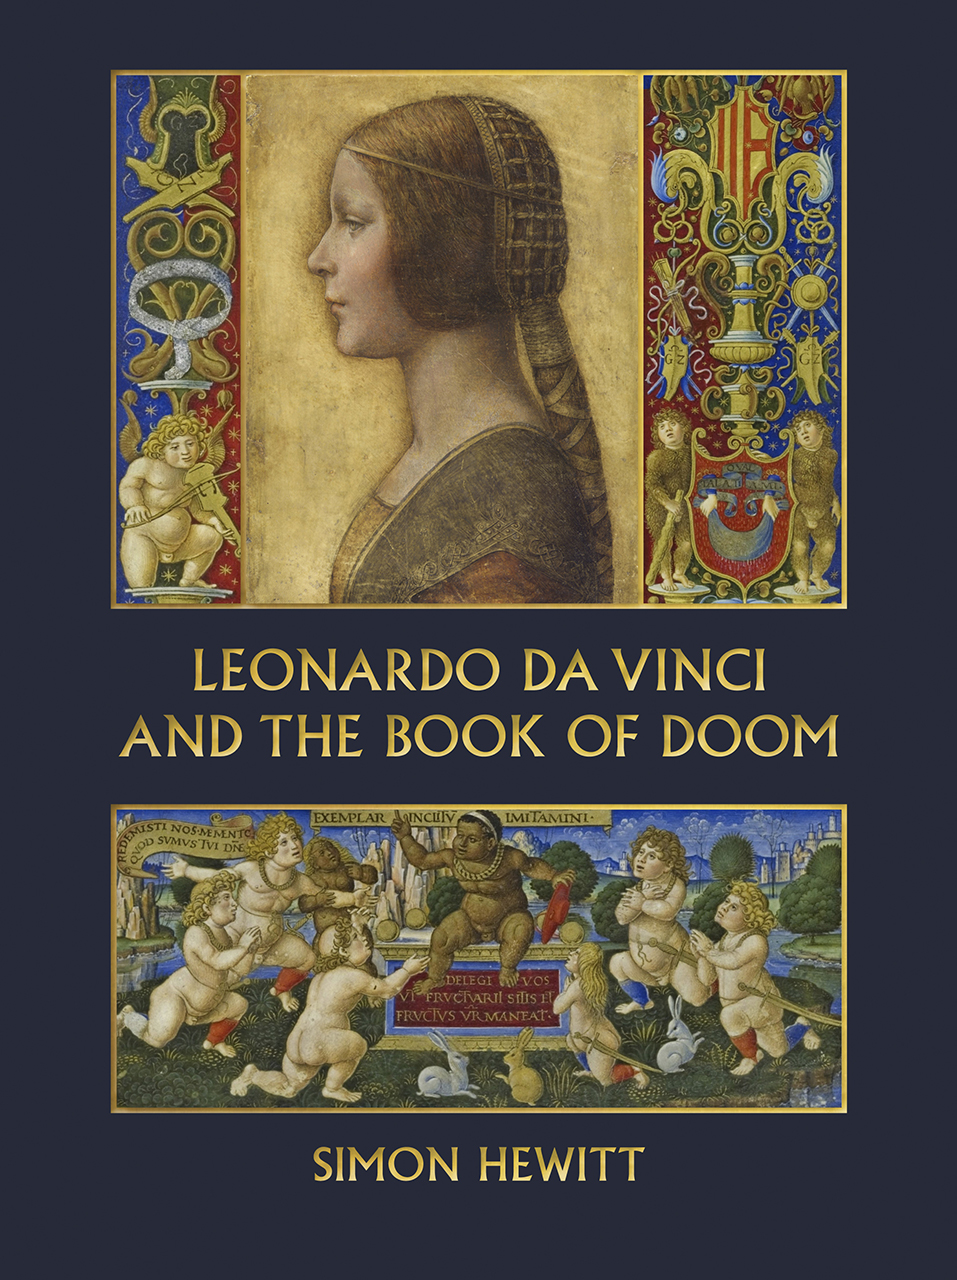 Leonardo da Vinci and The Book of Doom: Bianca Sforza, The Sforziada and Artful Propaganda in Renaissance Milan